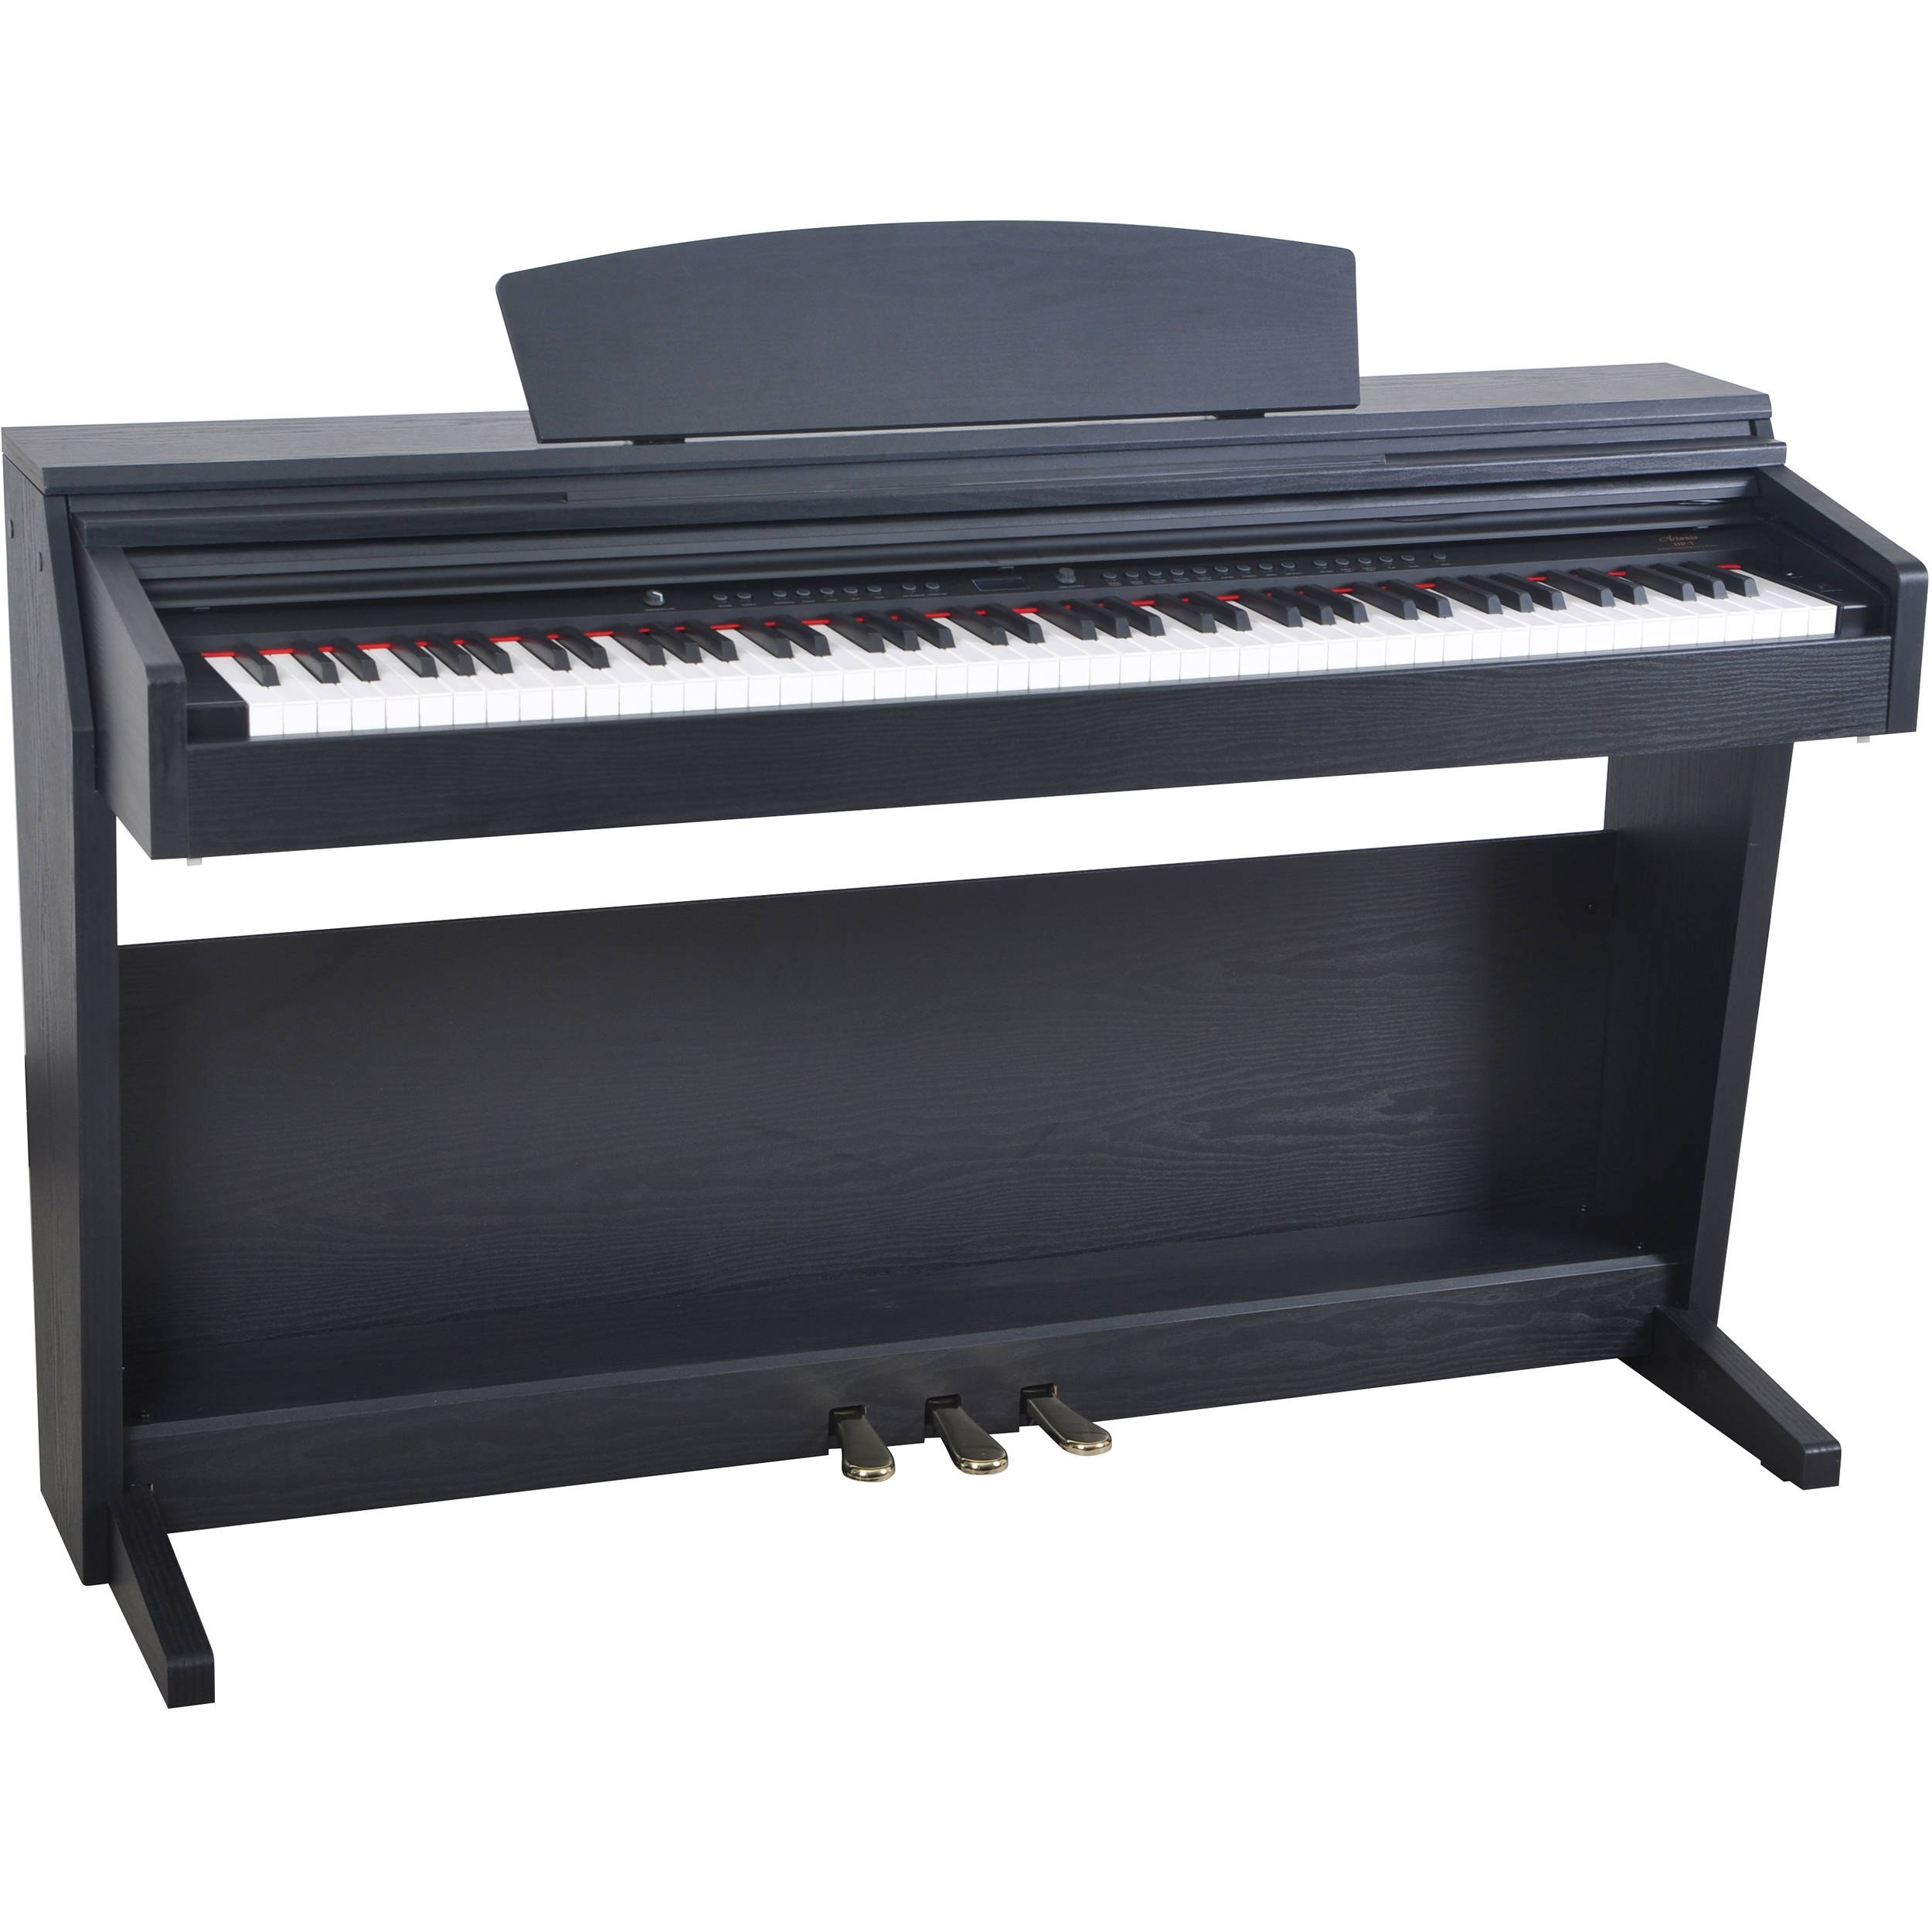 artesia dp 7 deluxe digital upright piano rosewood dp 7 rsw. Black Bedroom Furniture Sets. Home Design Ideas